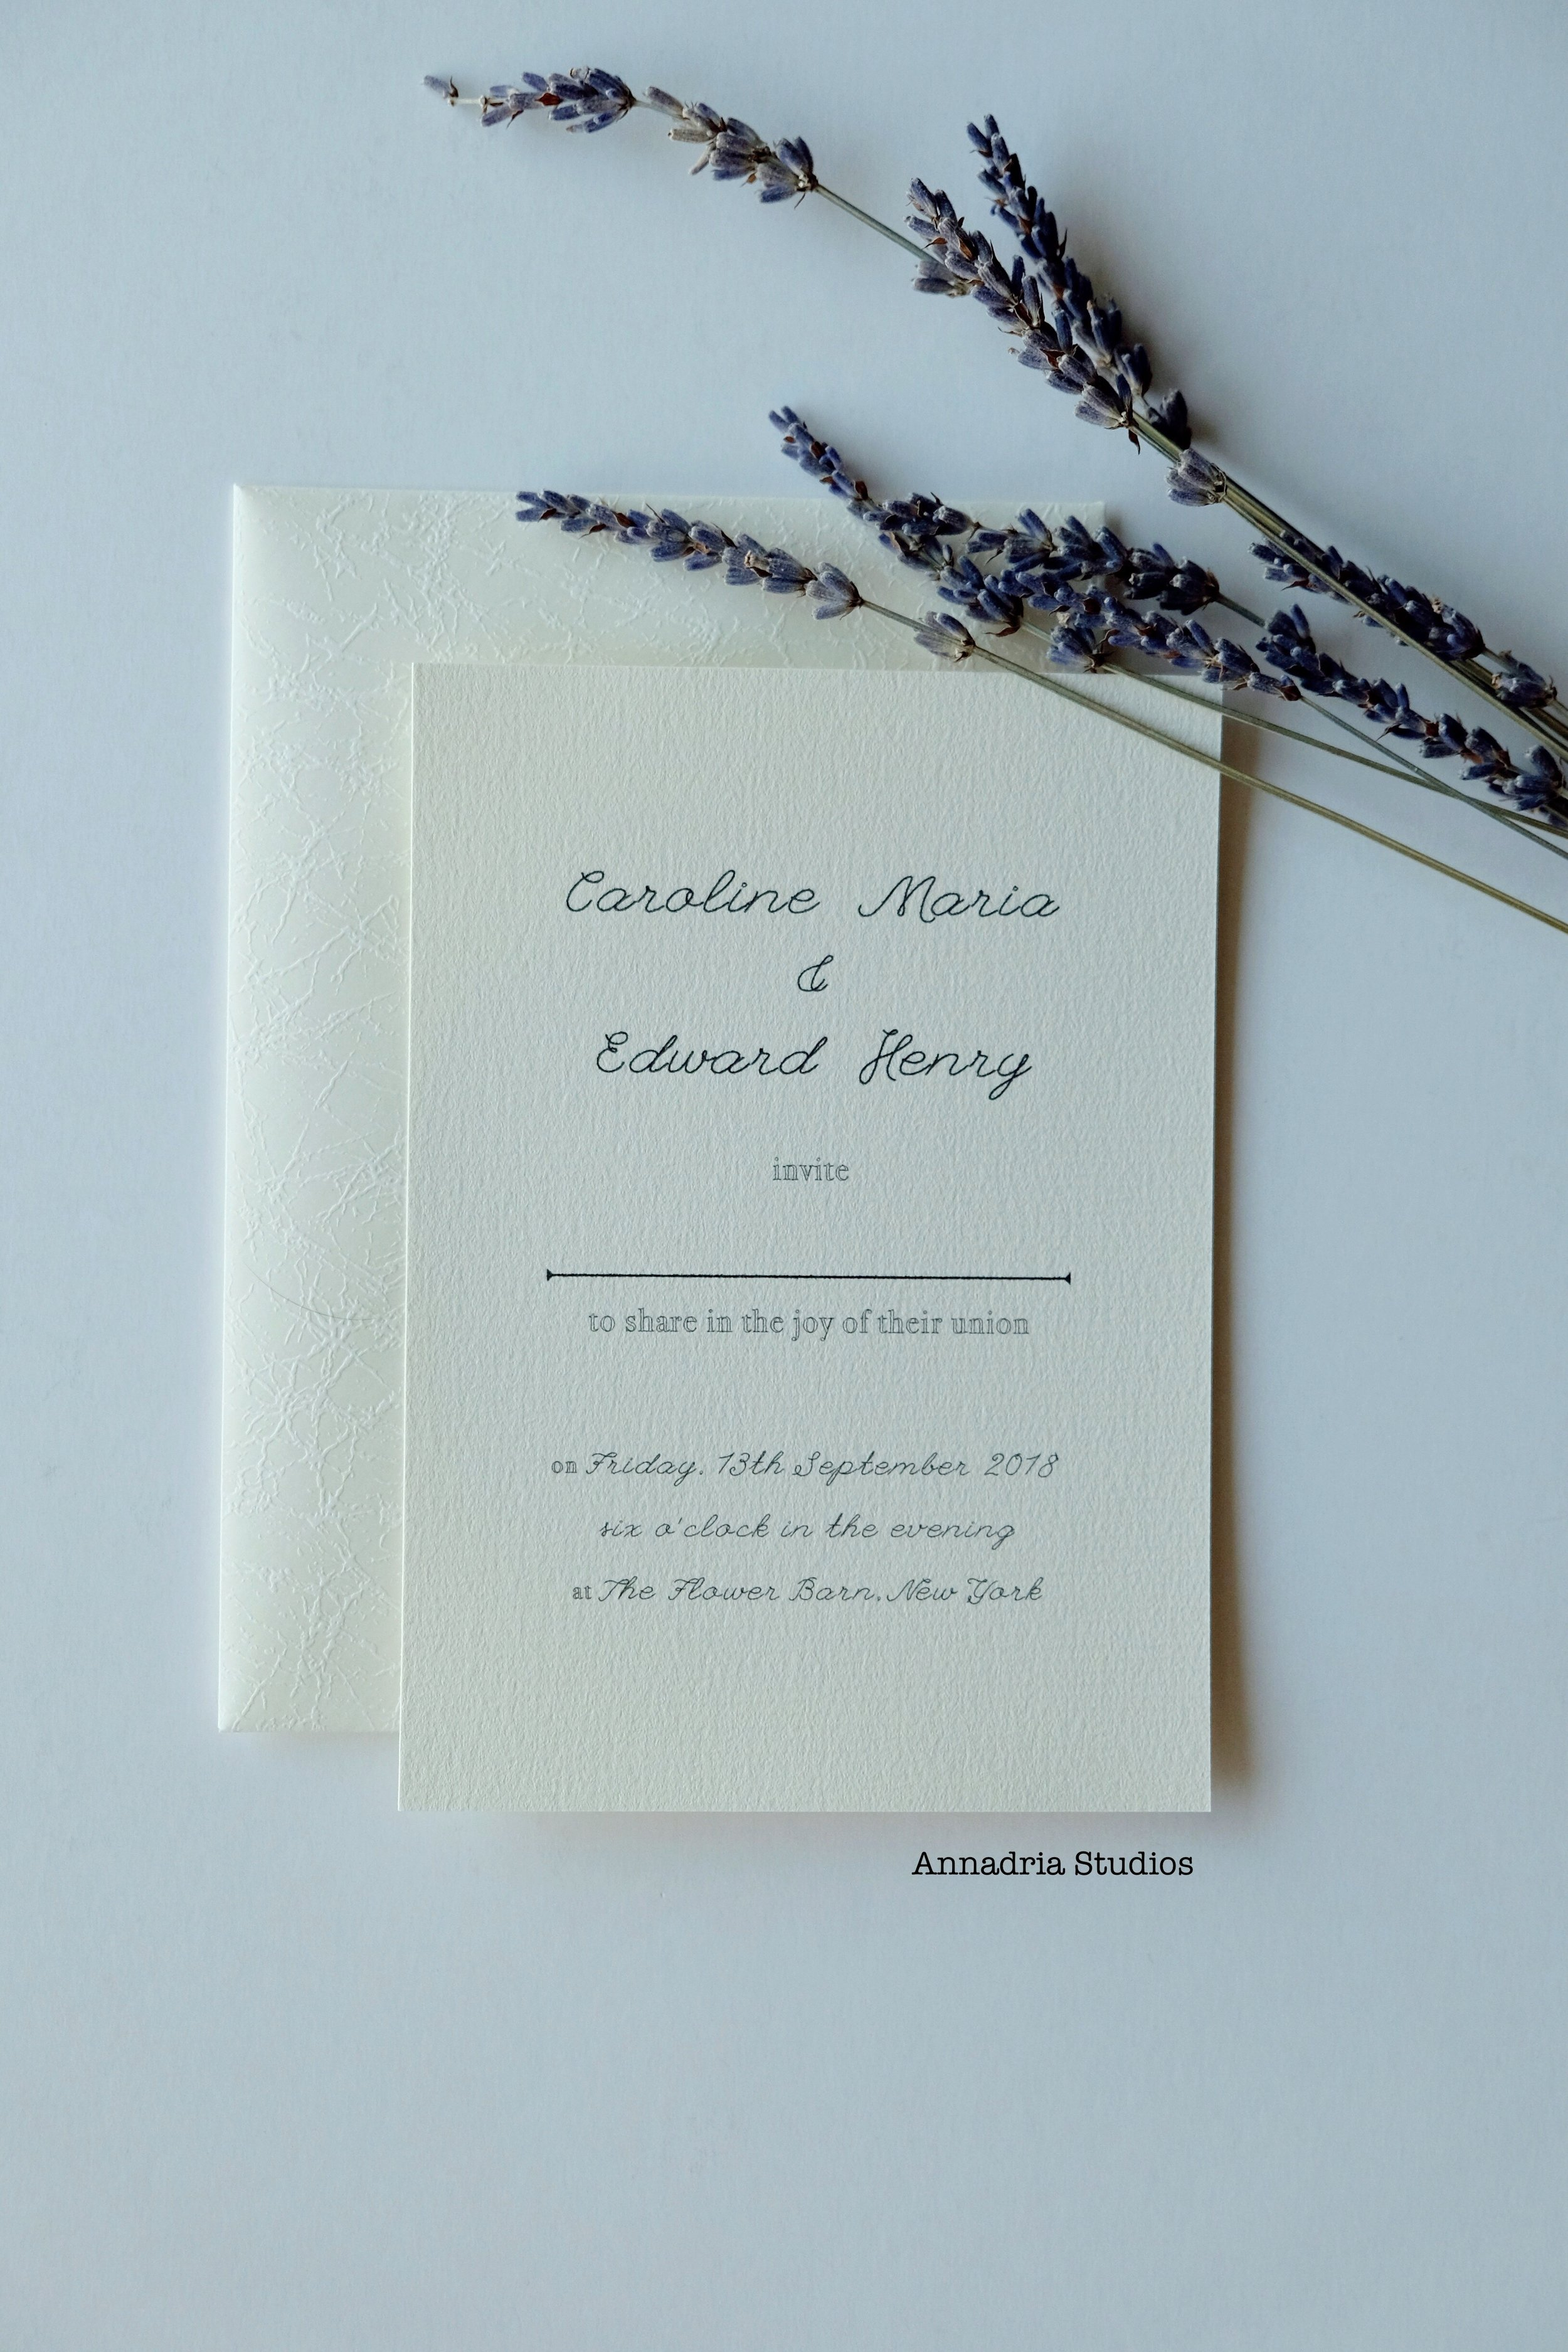 Invitations with guest names, designed by  Annadria Studios .